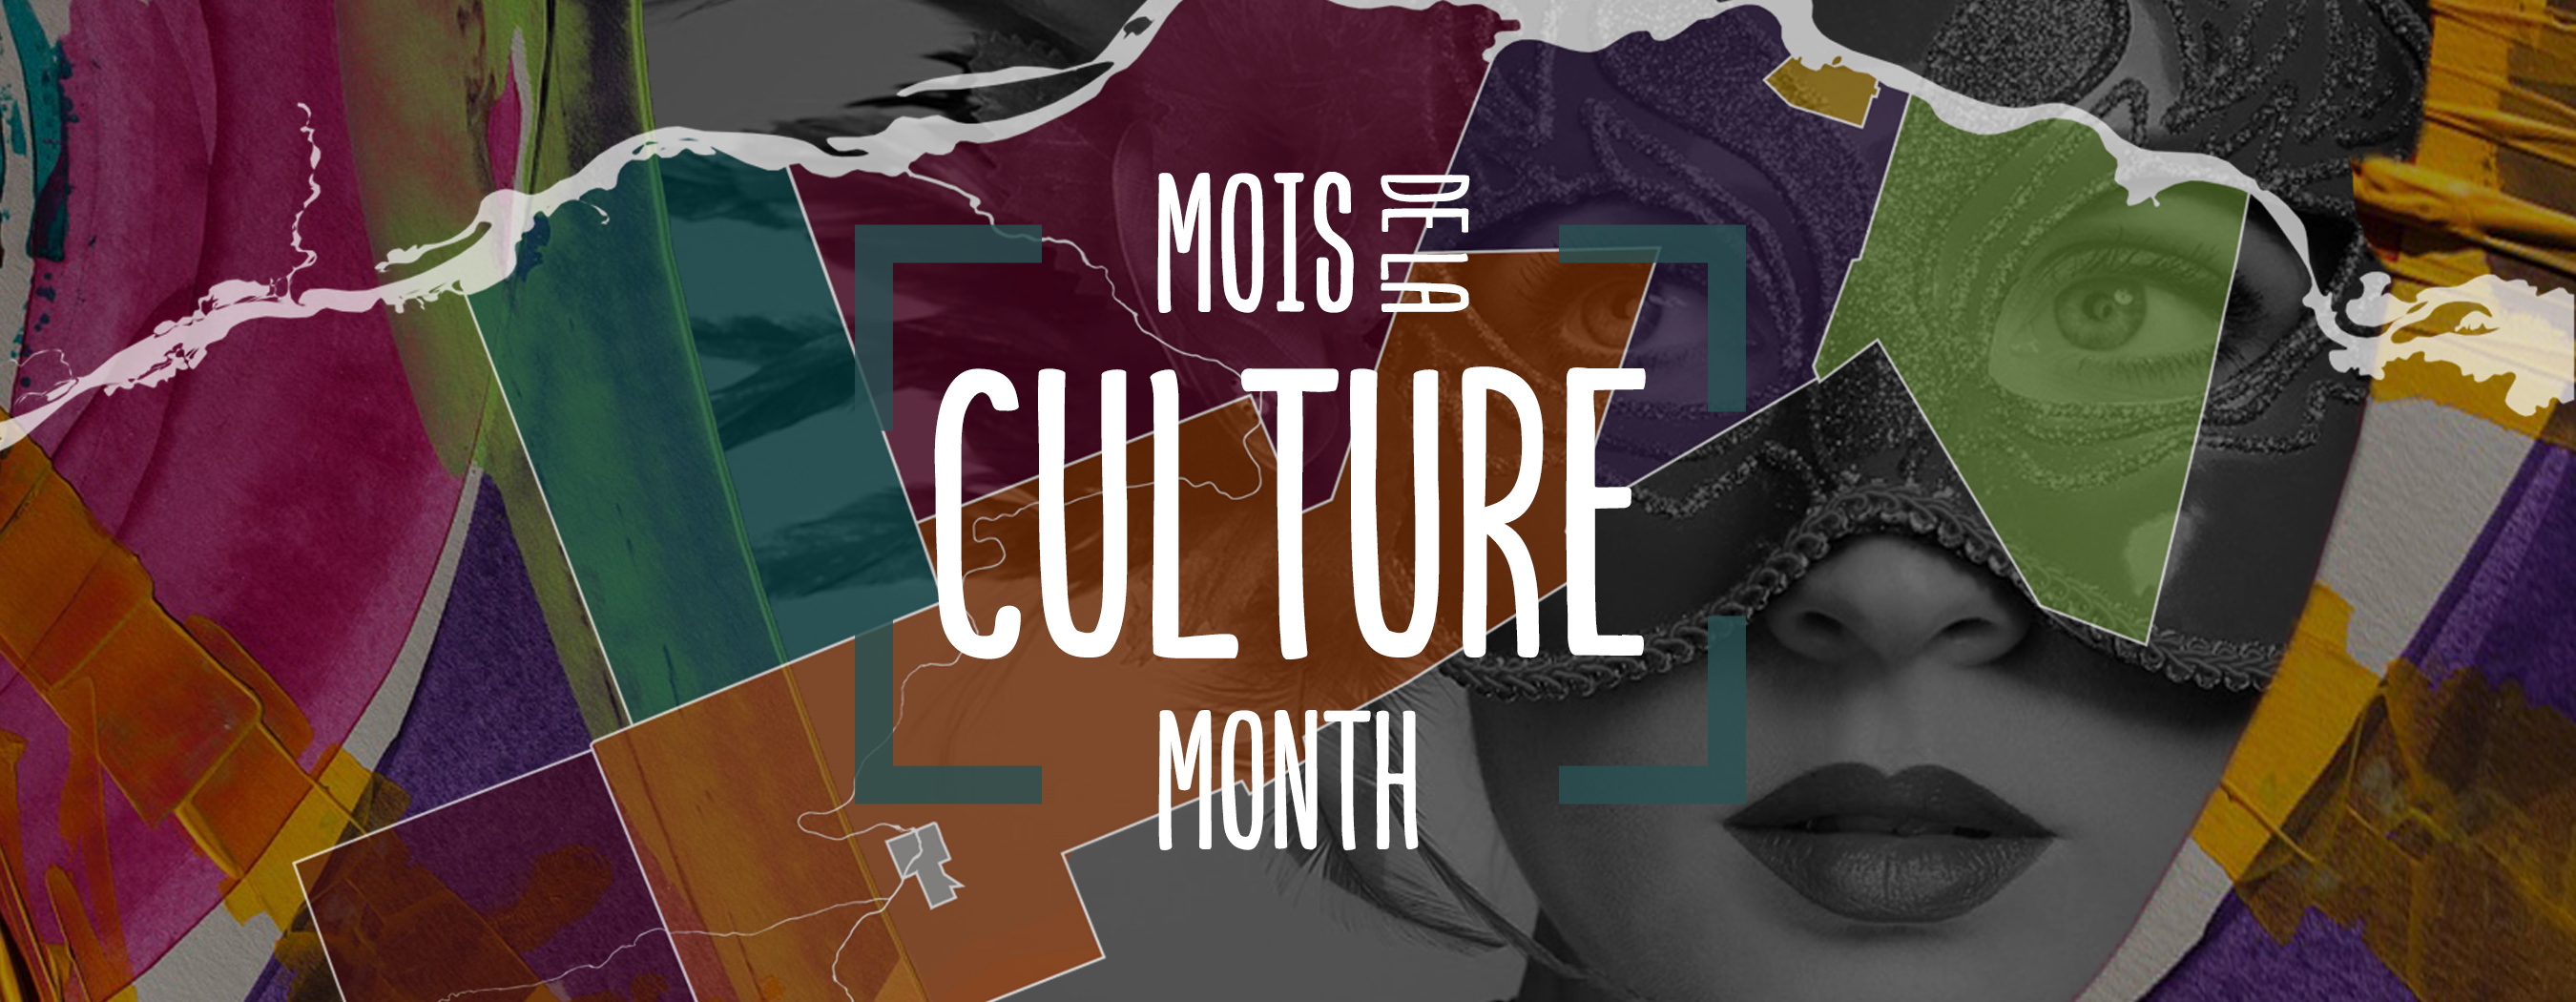 culture month banner